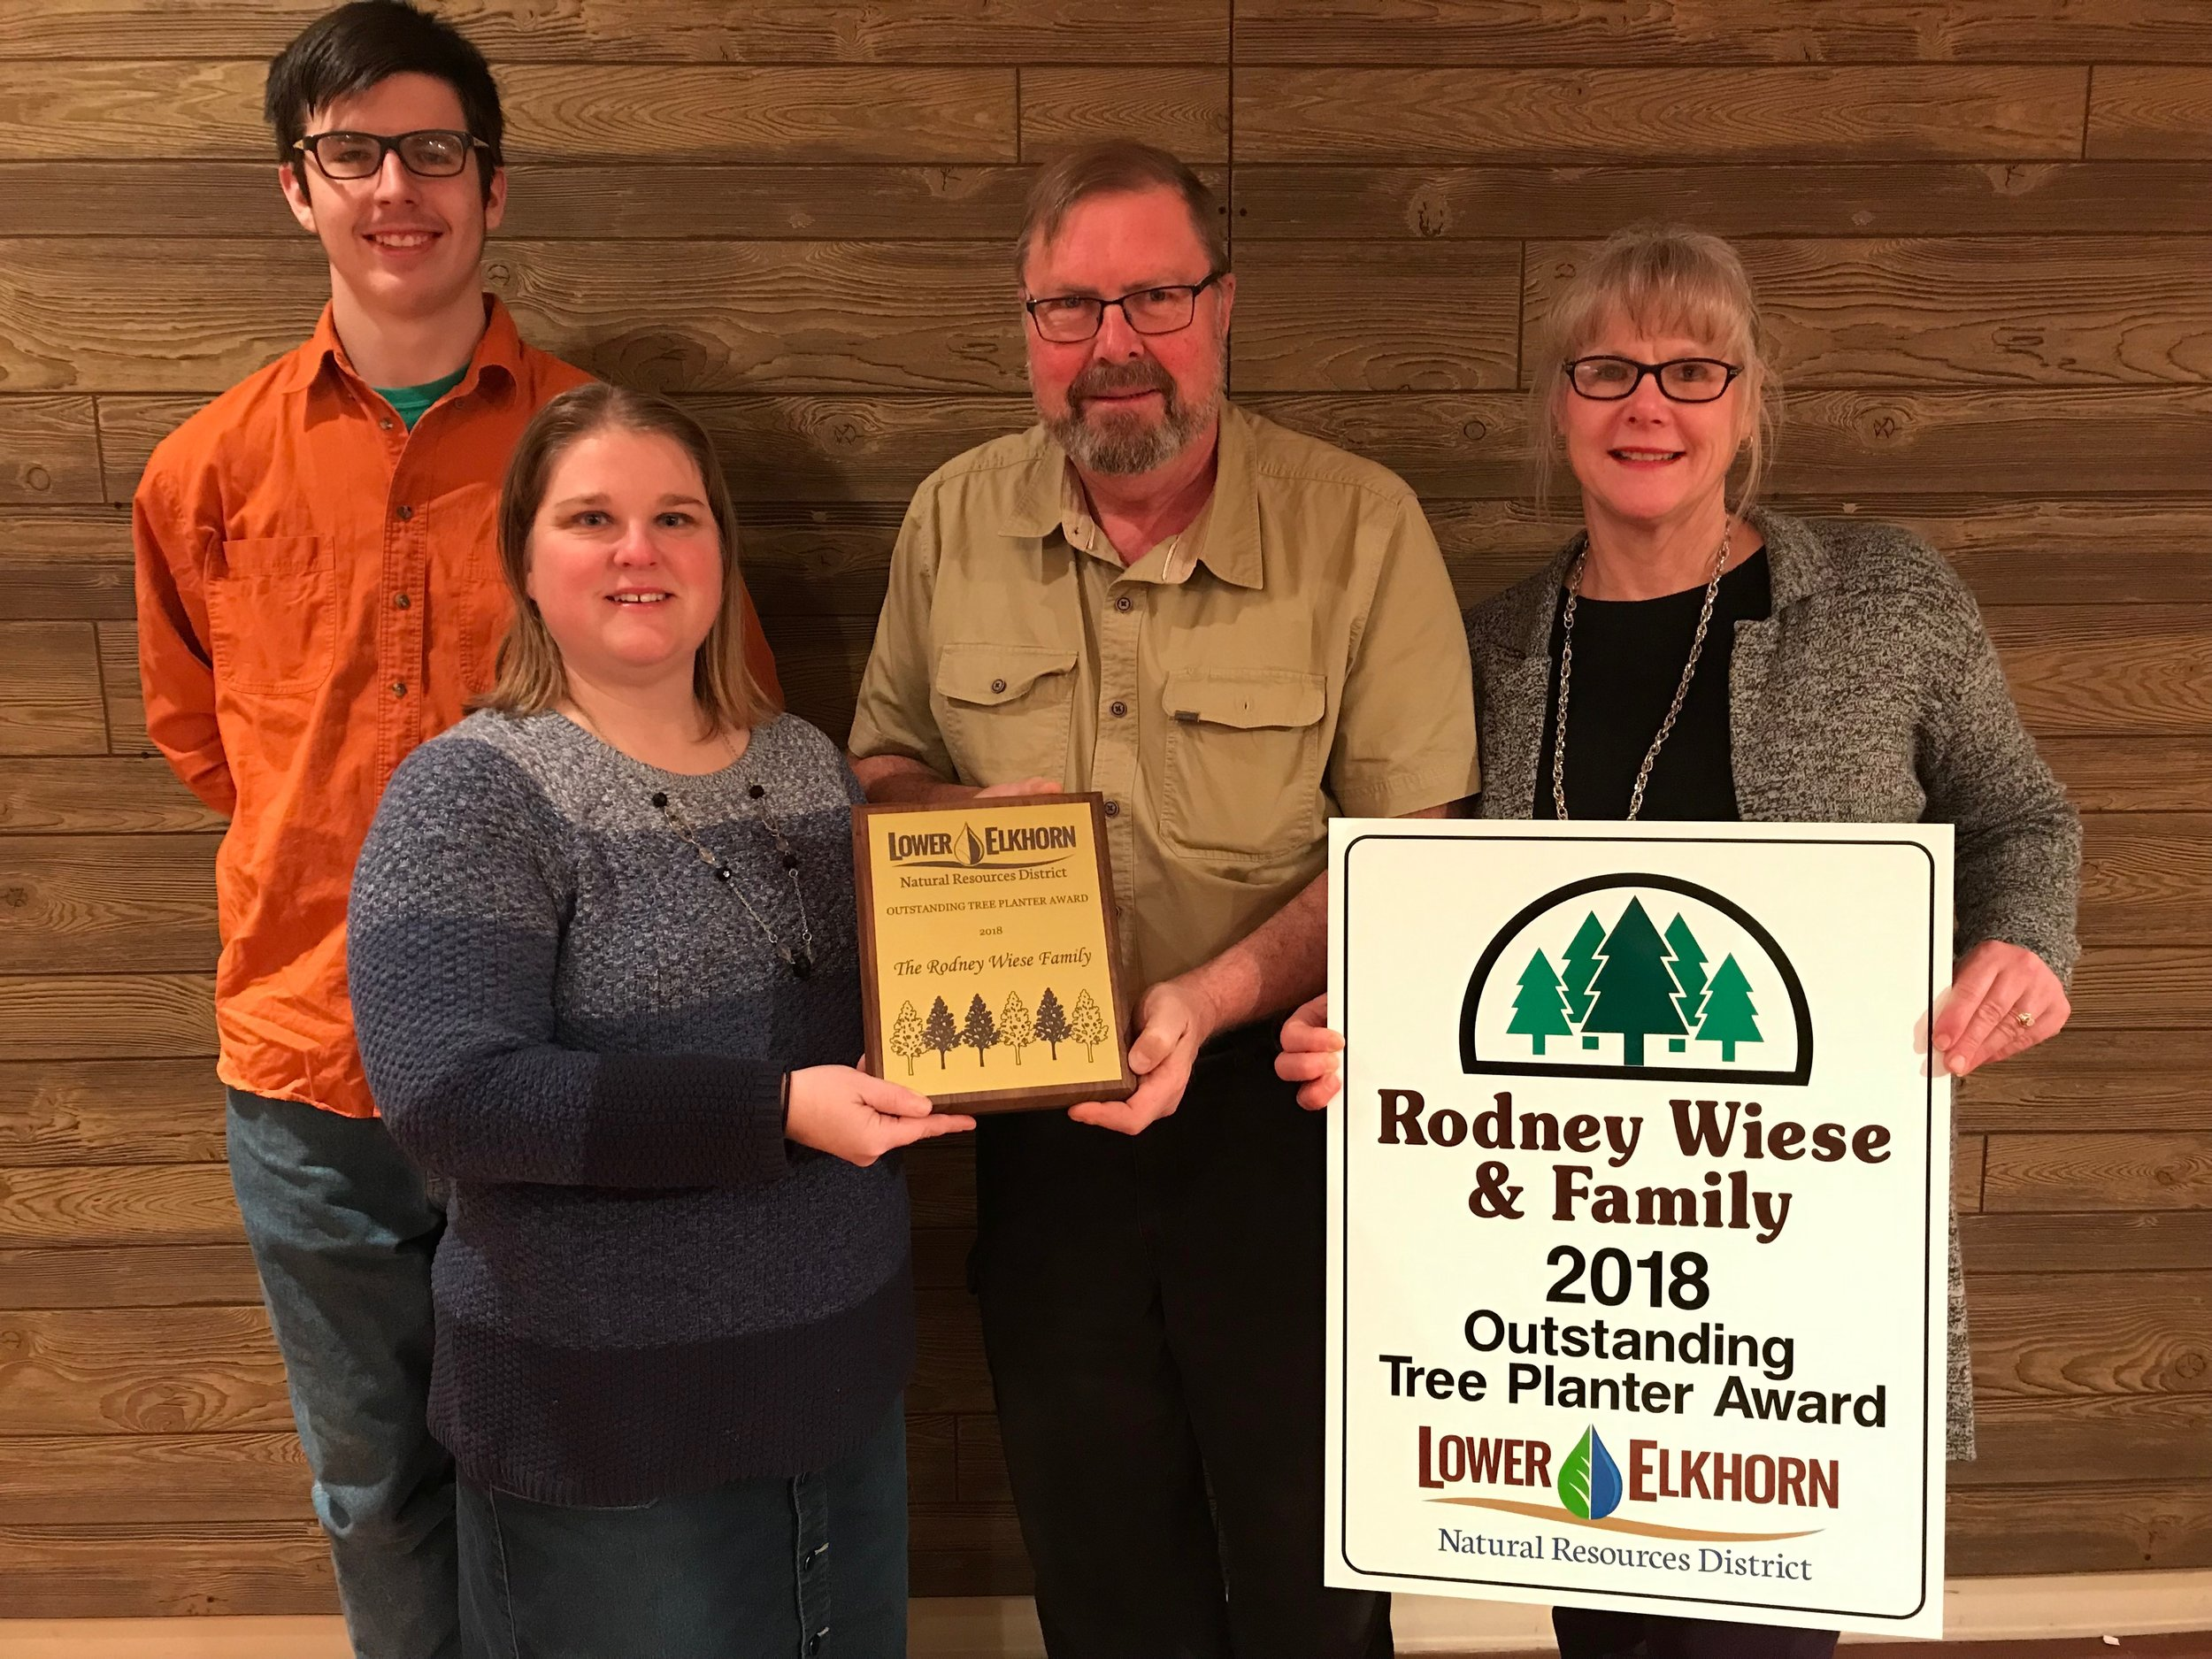 (Photo – from left to right: Andrew Wiese; LENRD Forester, Pam Bergstrom; Rodney Wiese; and Joan Wiese).